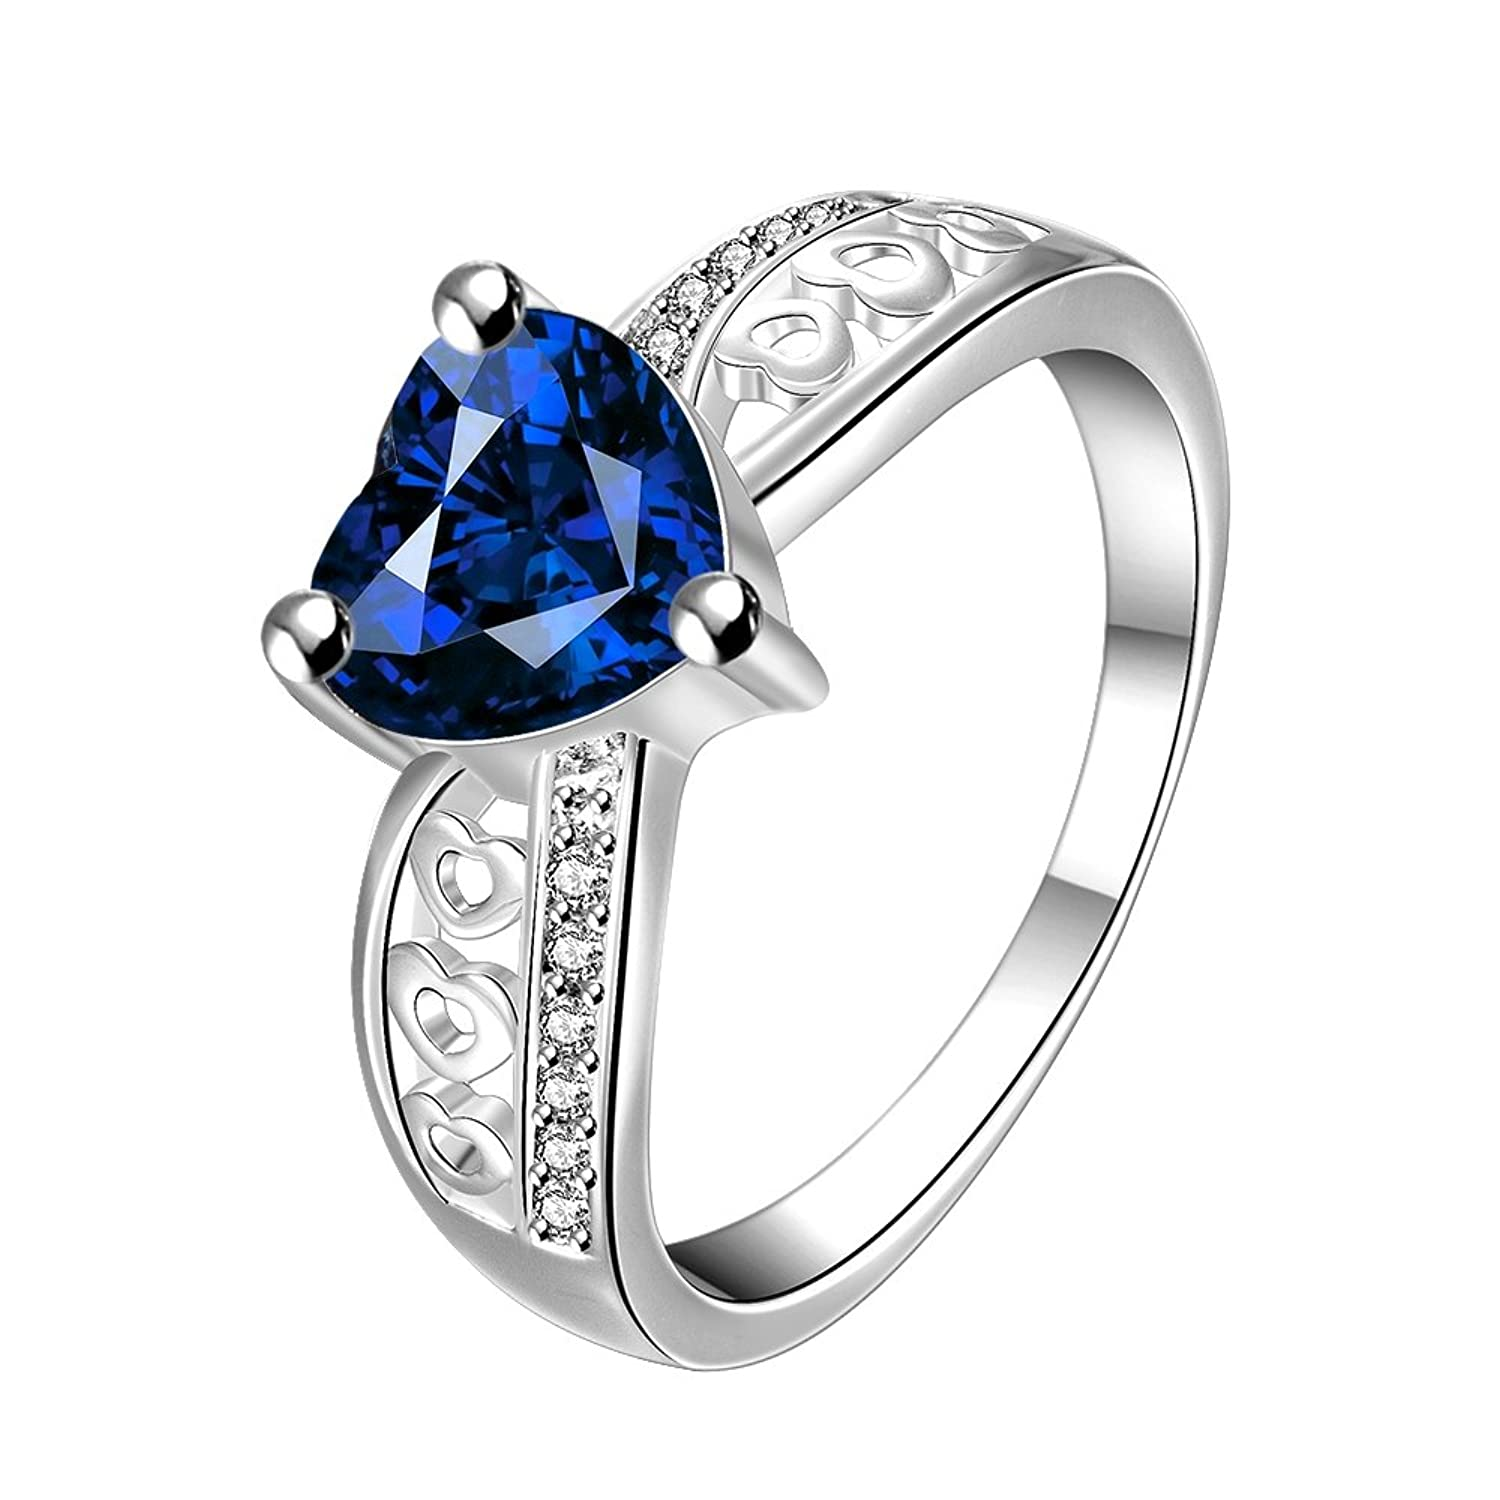 amazon sizes nickel finish dp created com rings sterling carats jewelry halo blue ring white gold rhodium silver to sapphire royal